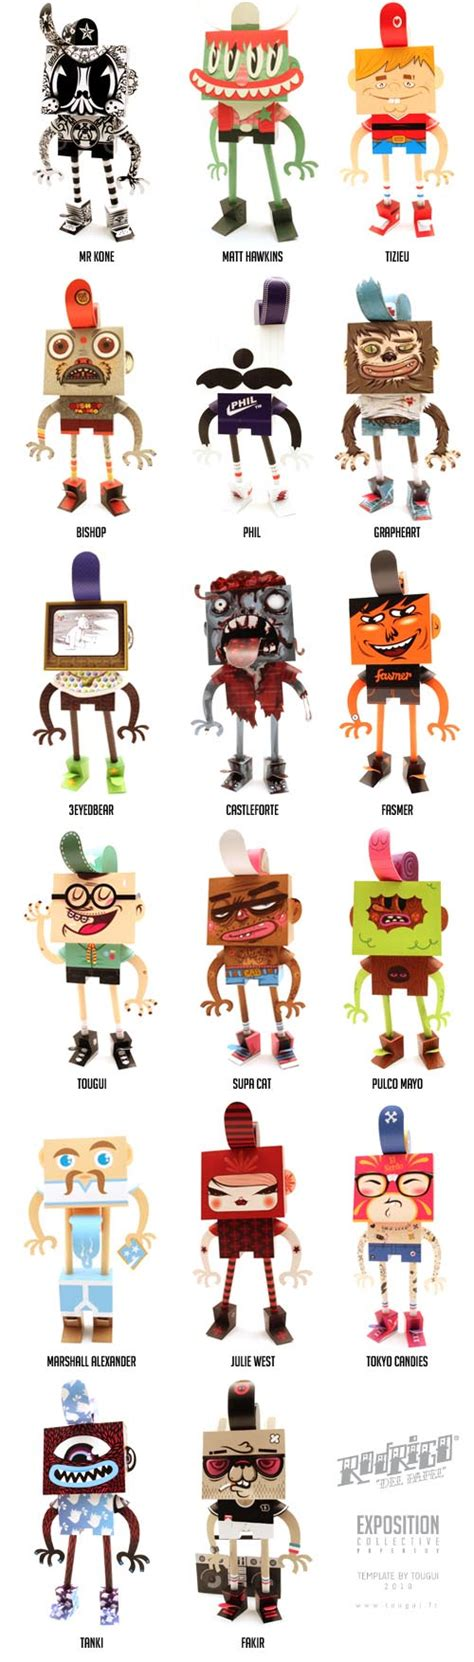 Papercraft Figures - make your own papercraft through rodrigo papel gadgetsin